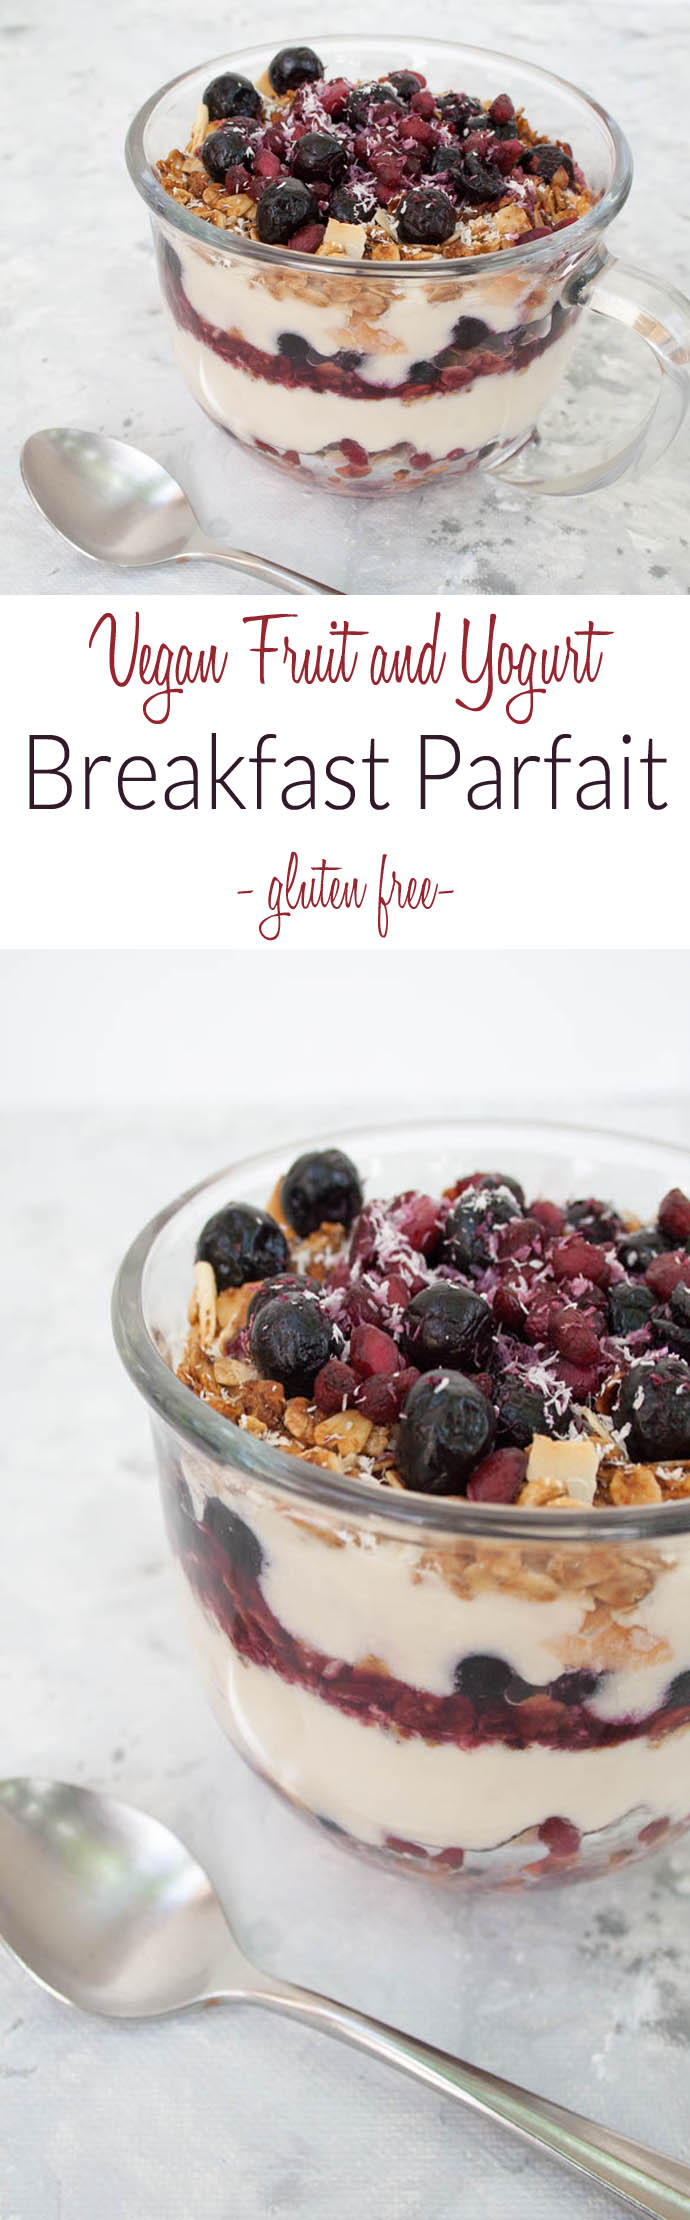 Vegan Fruit and Yogurt Breakfast Parfait collage photo with text